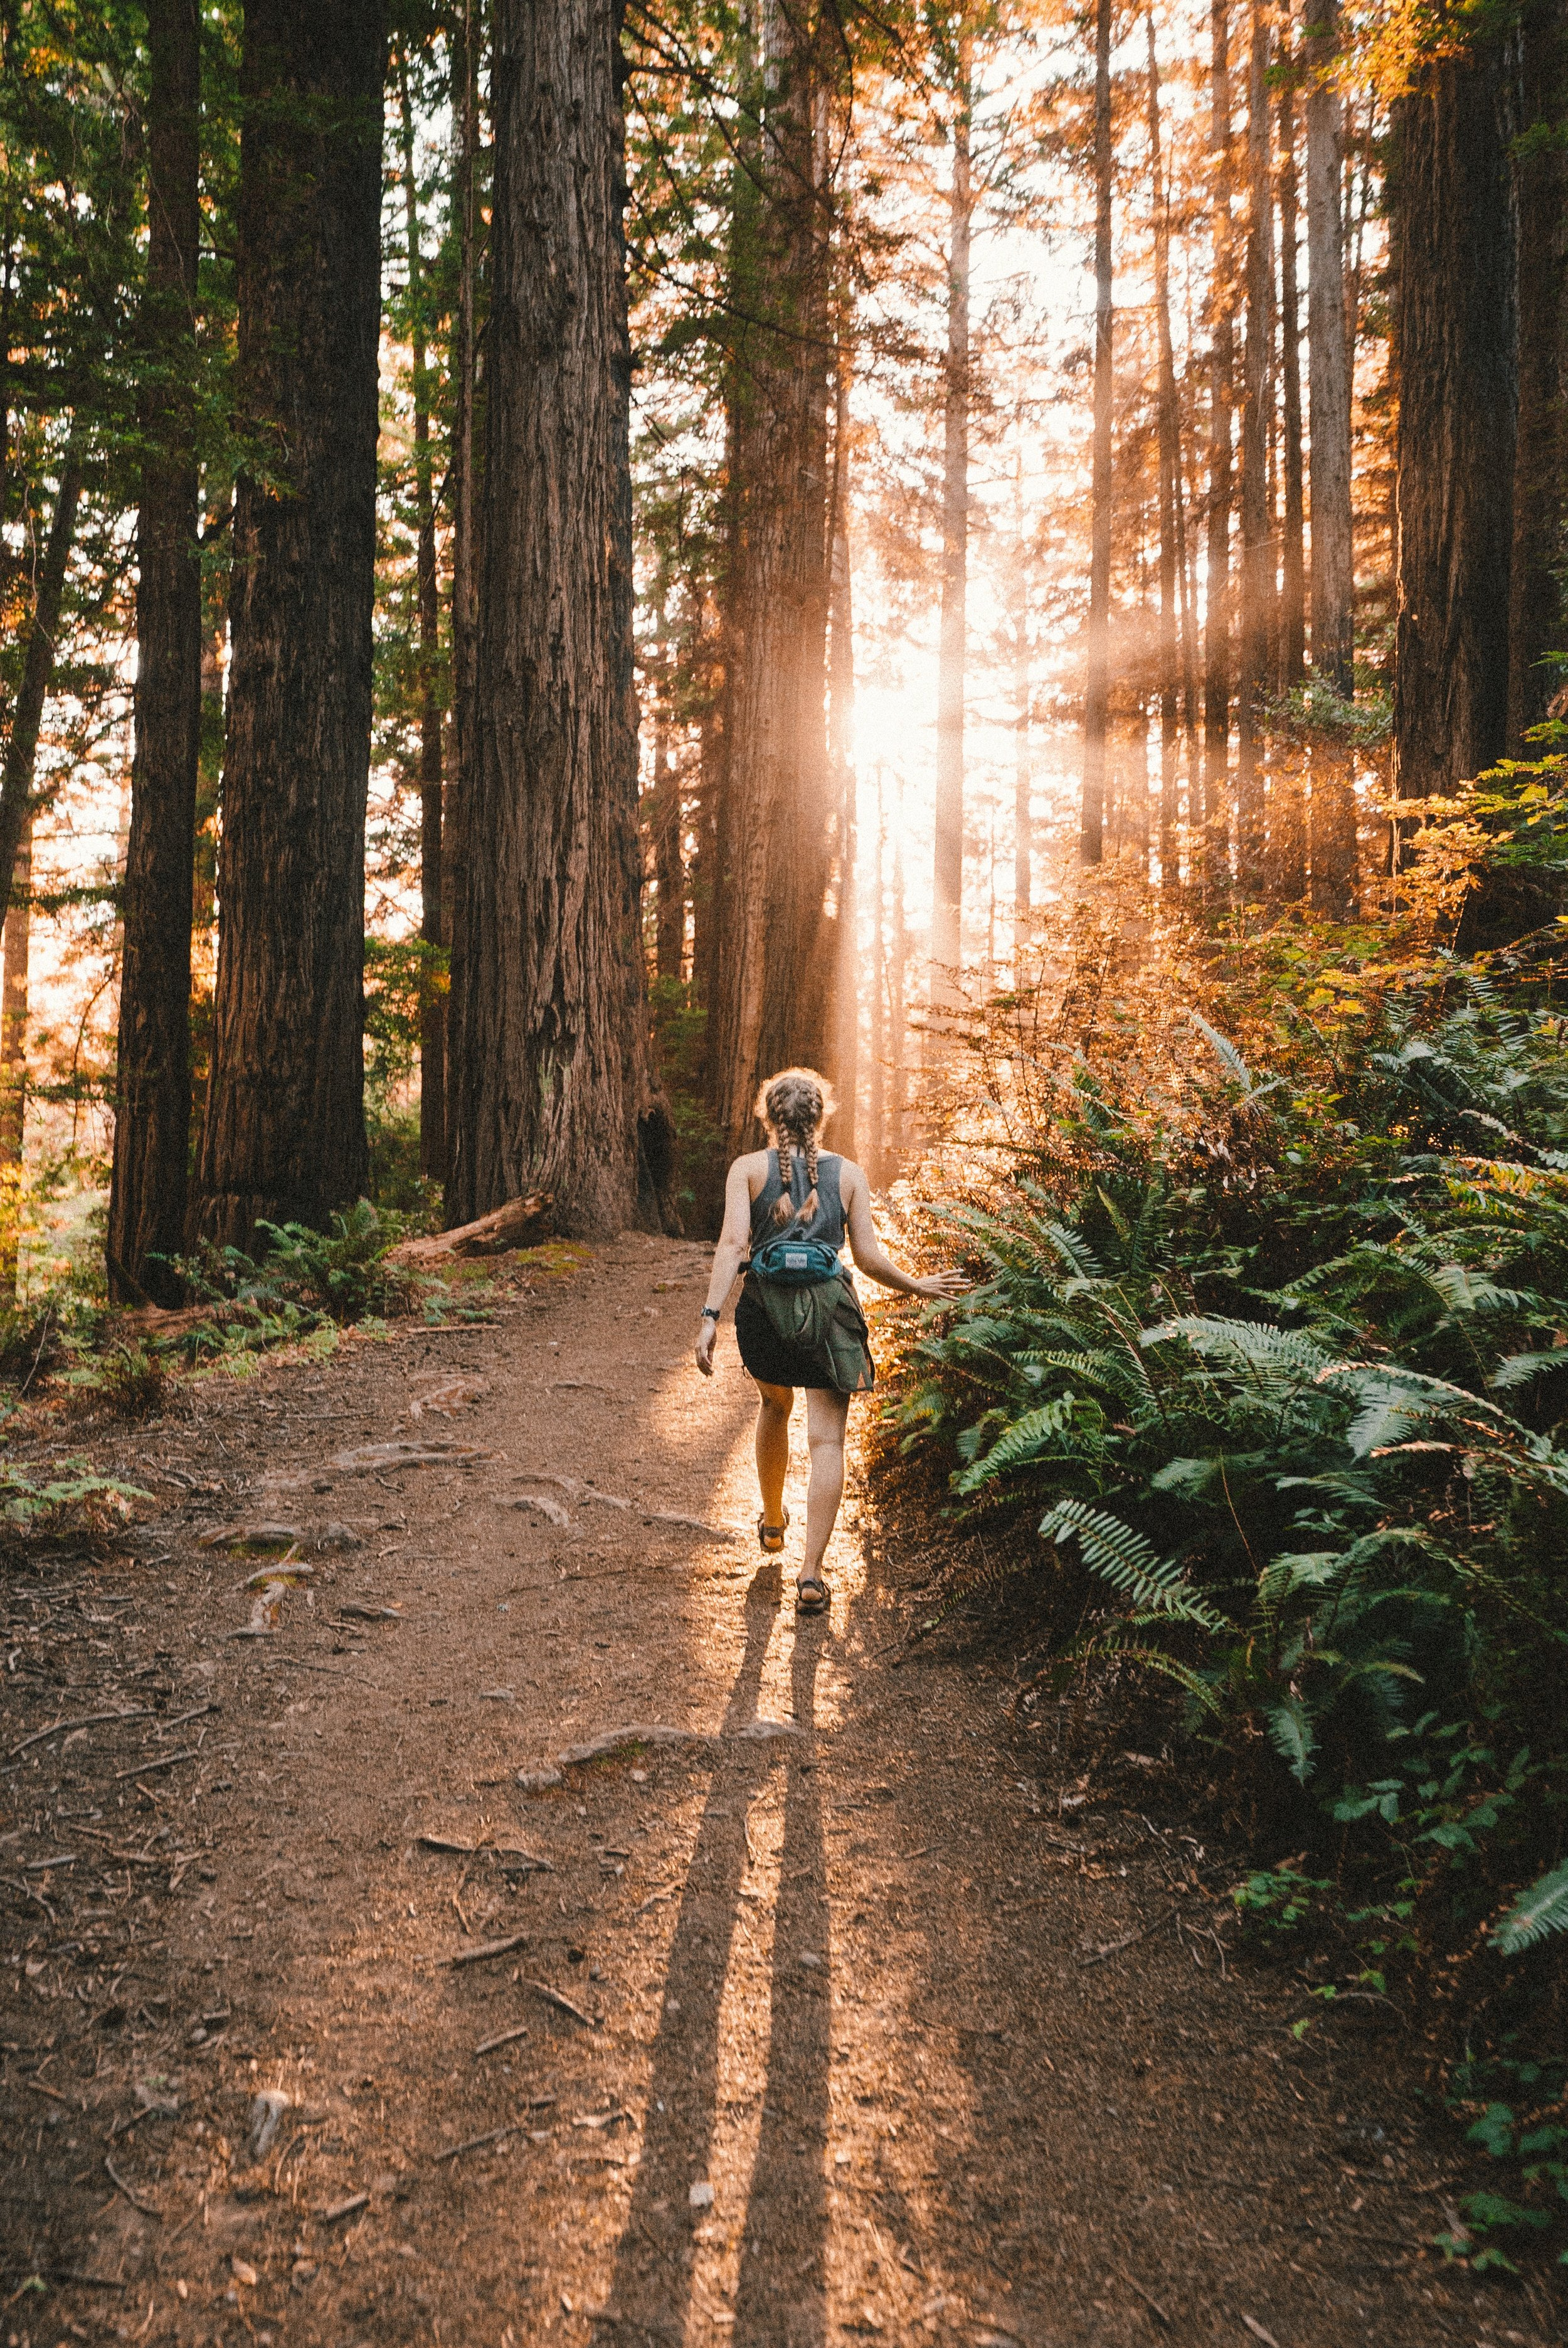 Muir Woods. Photo by  Kevin Wolf  on  Unsplash